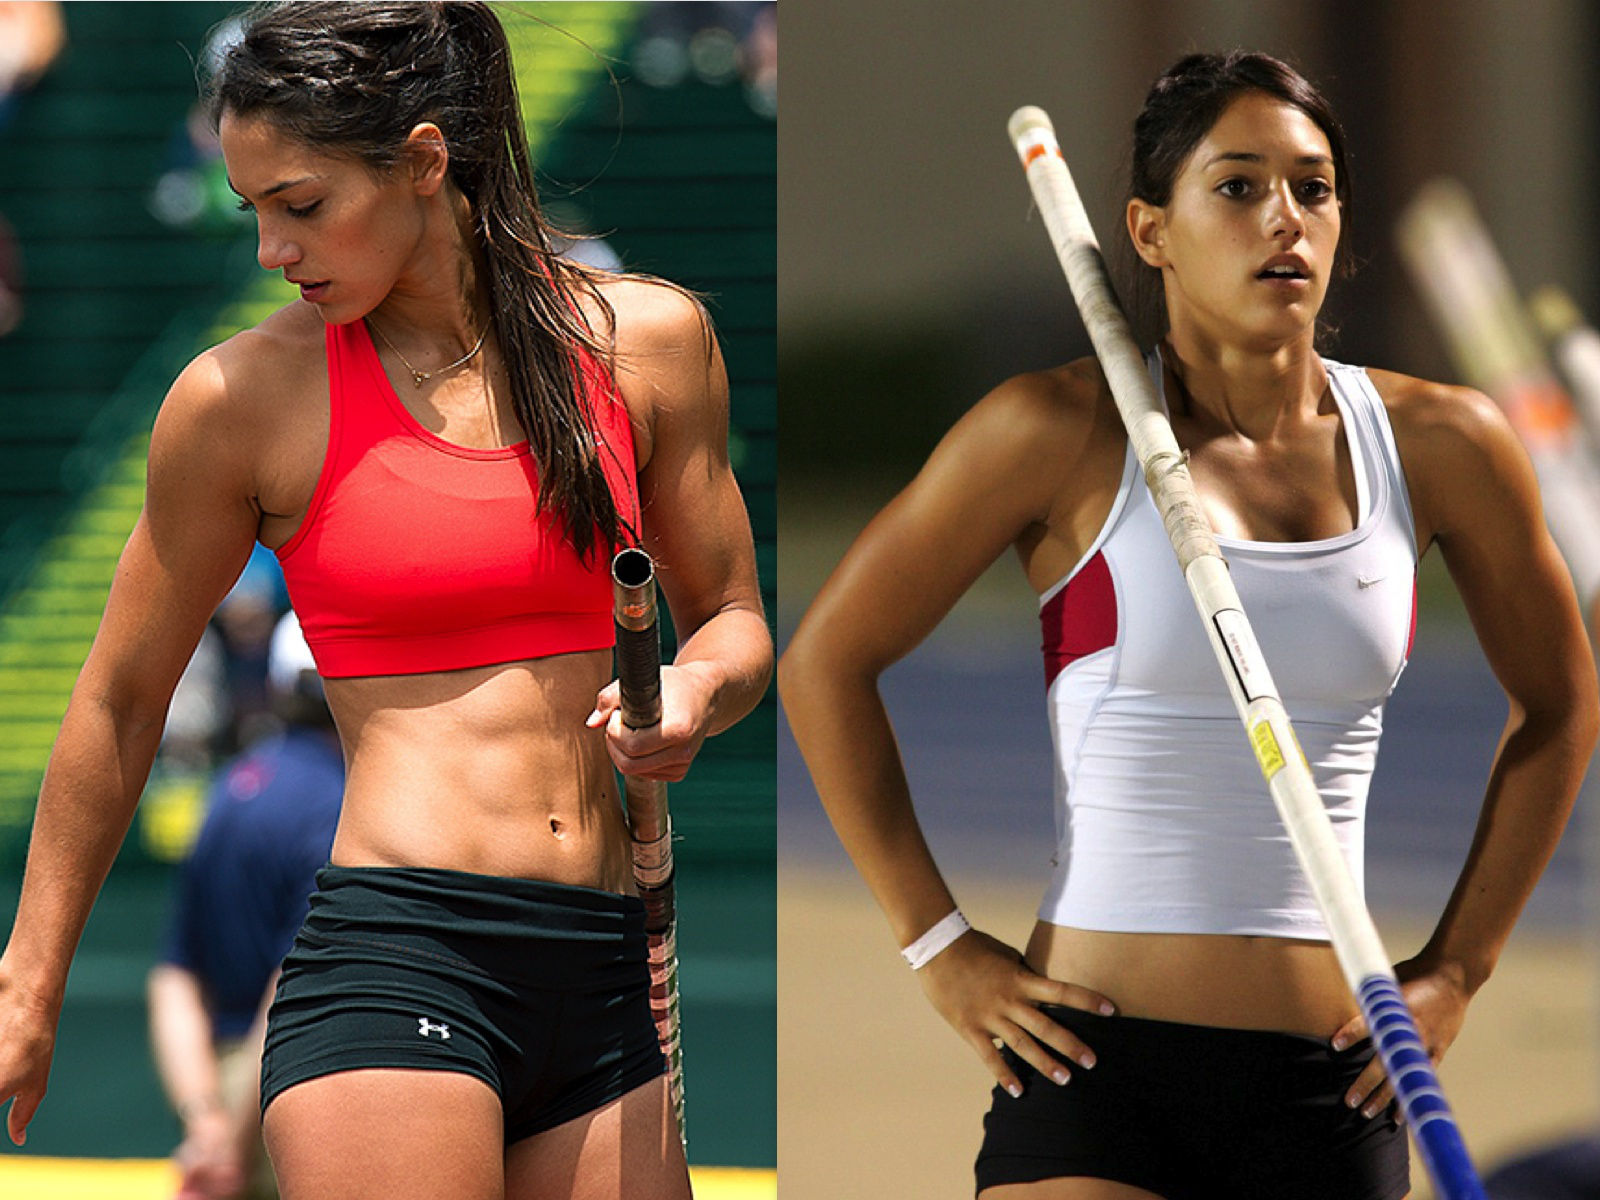 Most Beautiful Women in Sports